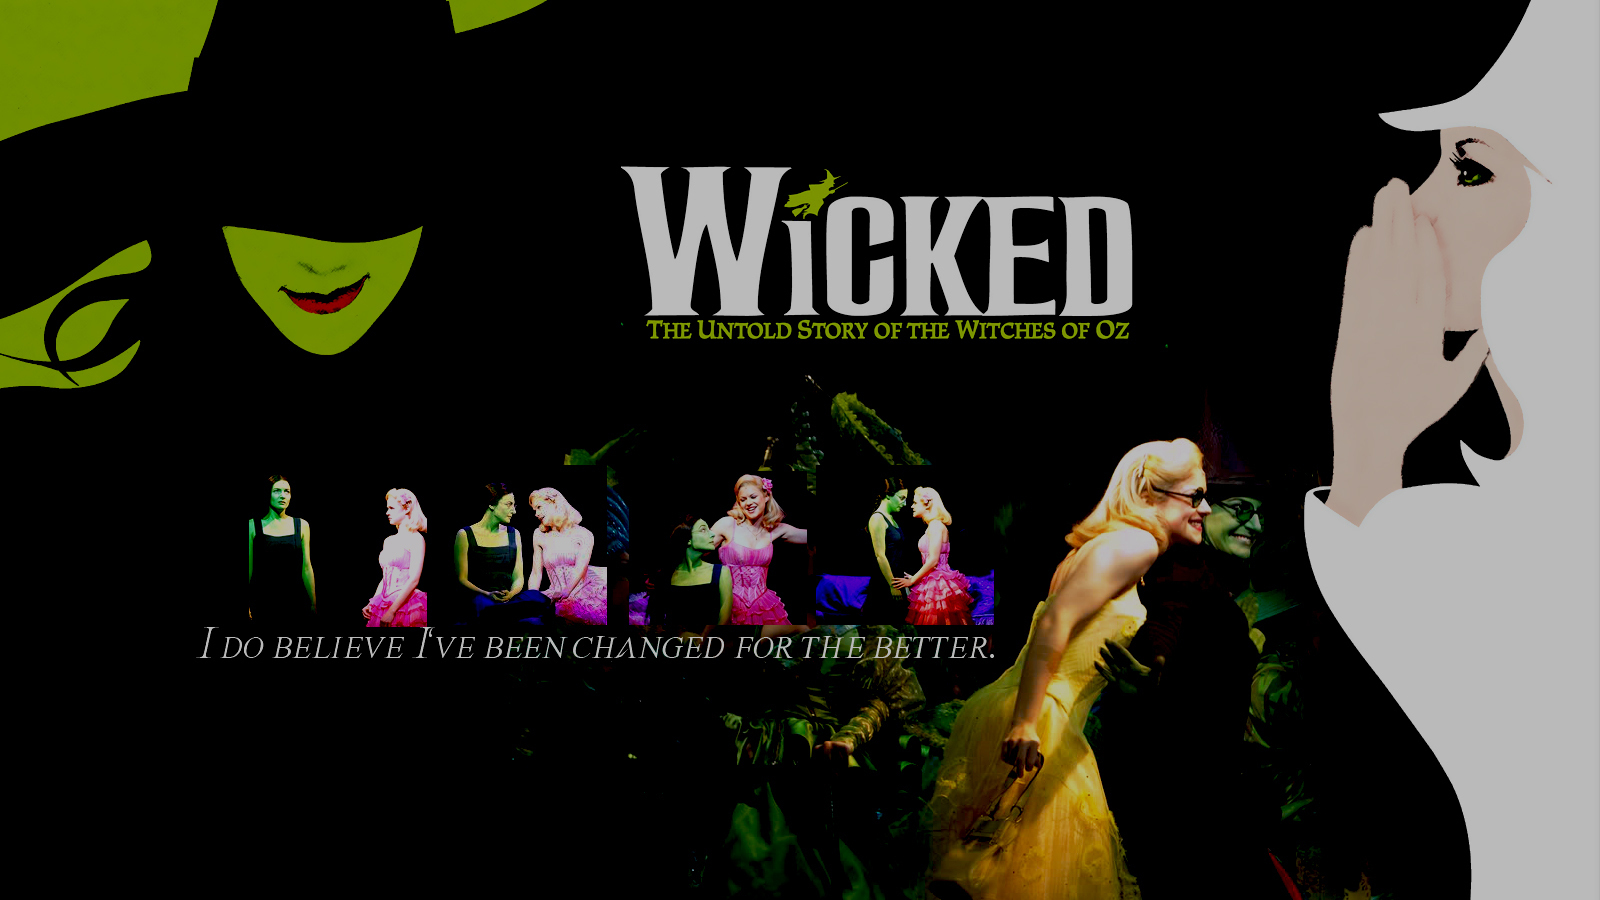 changed wicked wallpaper 11689314 fanpop